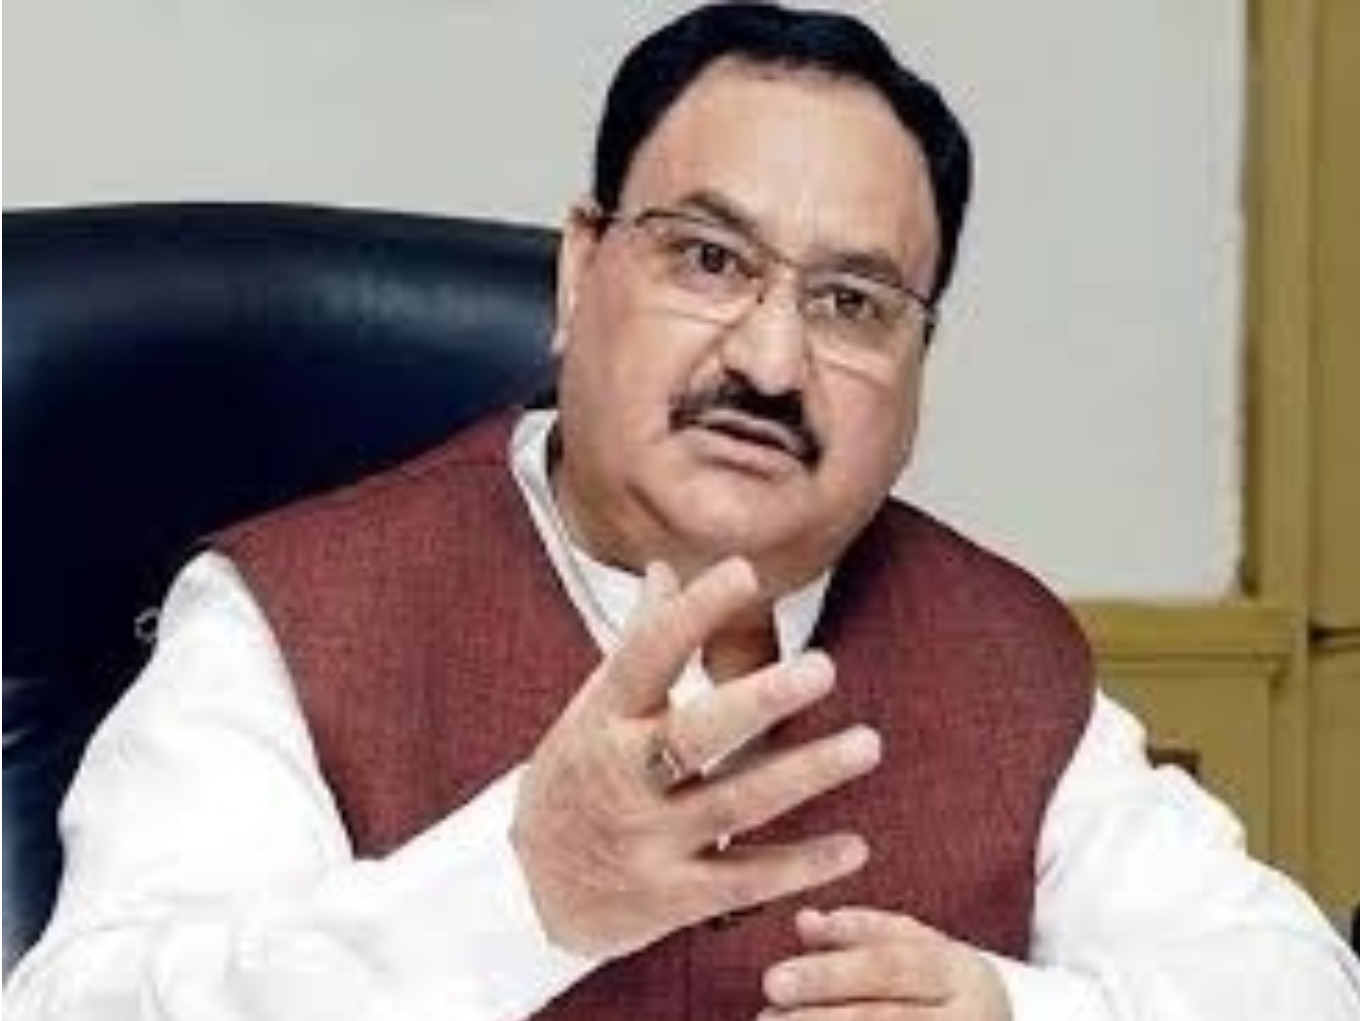 India likely to reach replacement level fertility: Union Health Minister J.P. Nadda